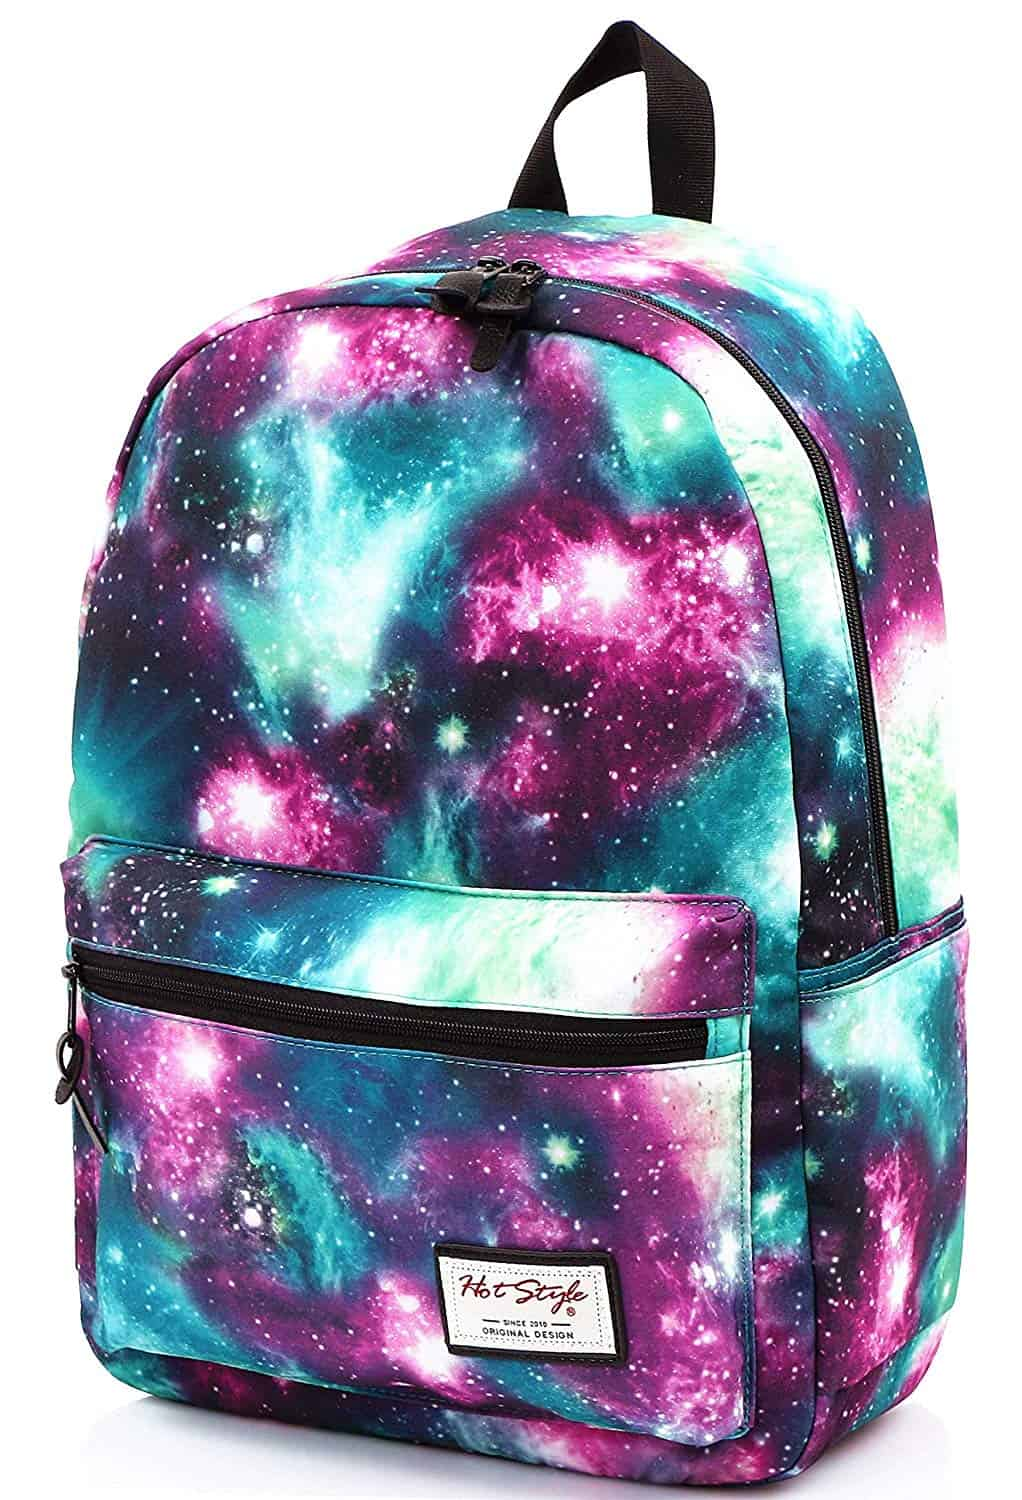 [Image description: Standard backpack with galaxy pattern across the bag.] via Amazon.